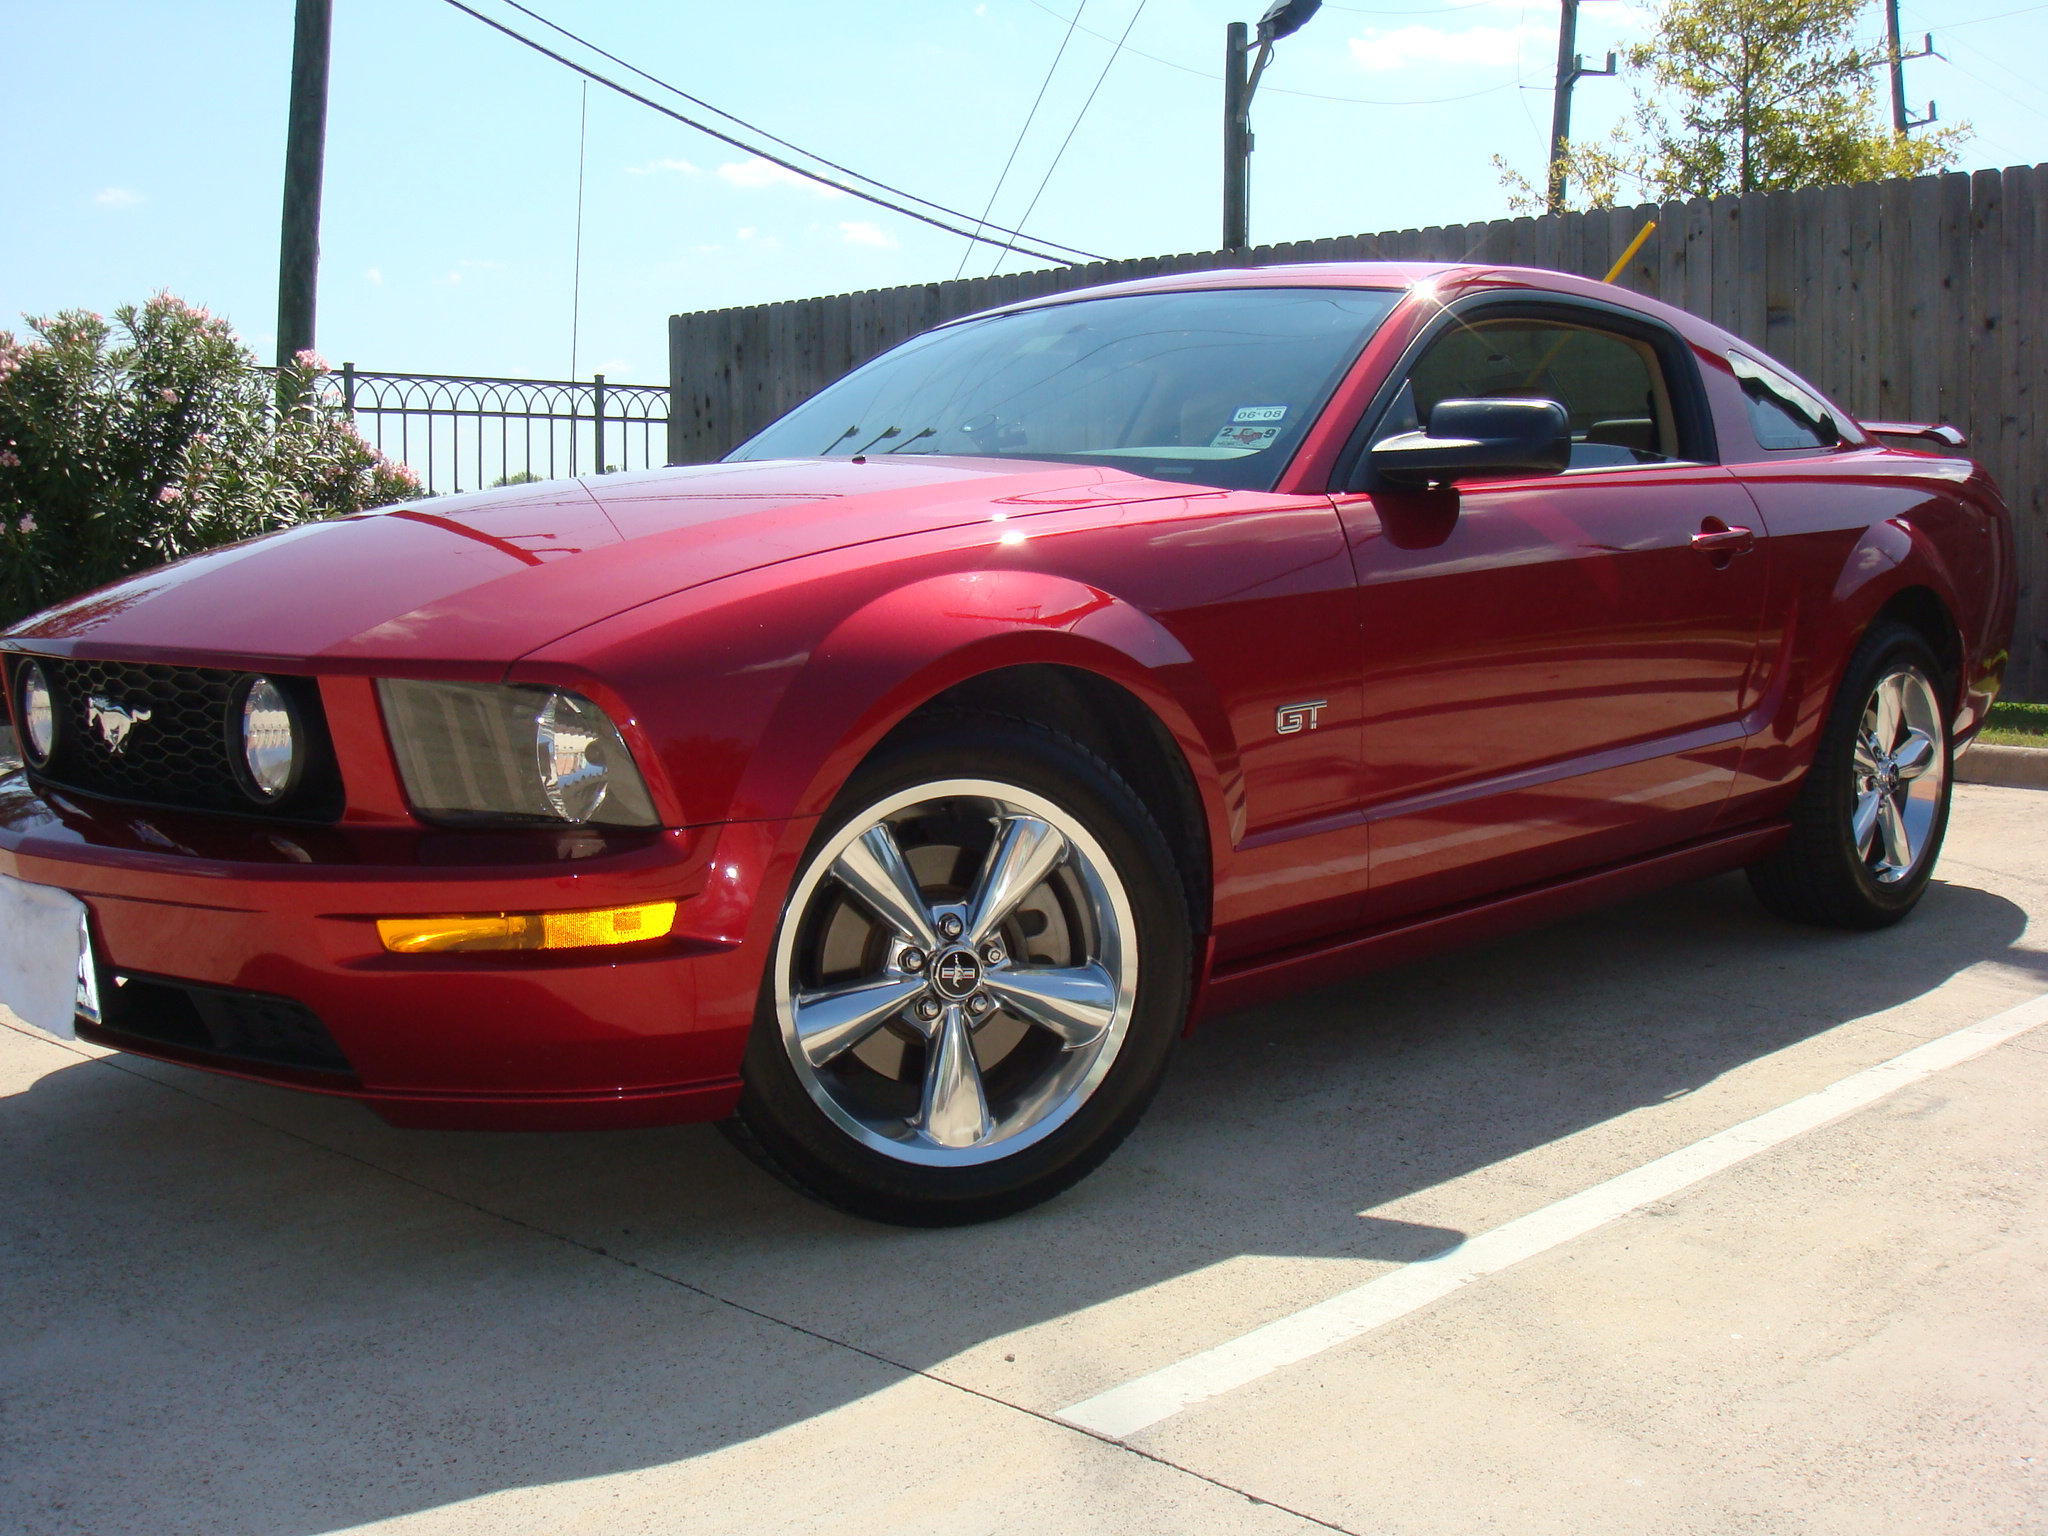 2006 ford mustang gt picture mods upgrades